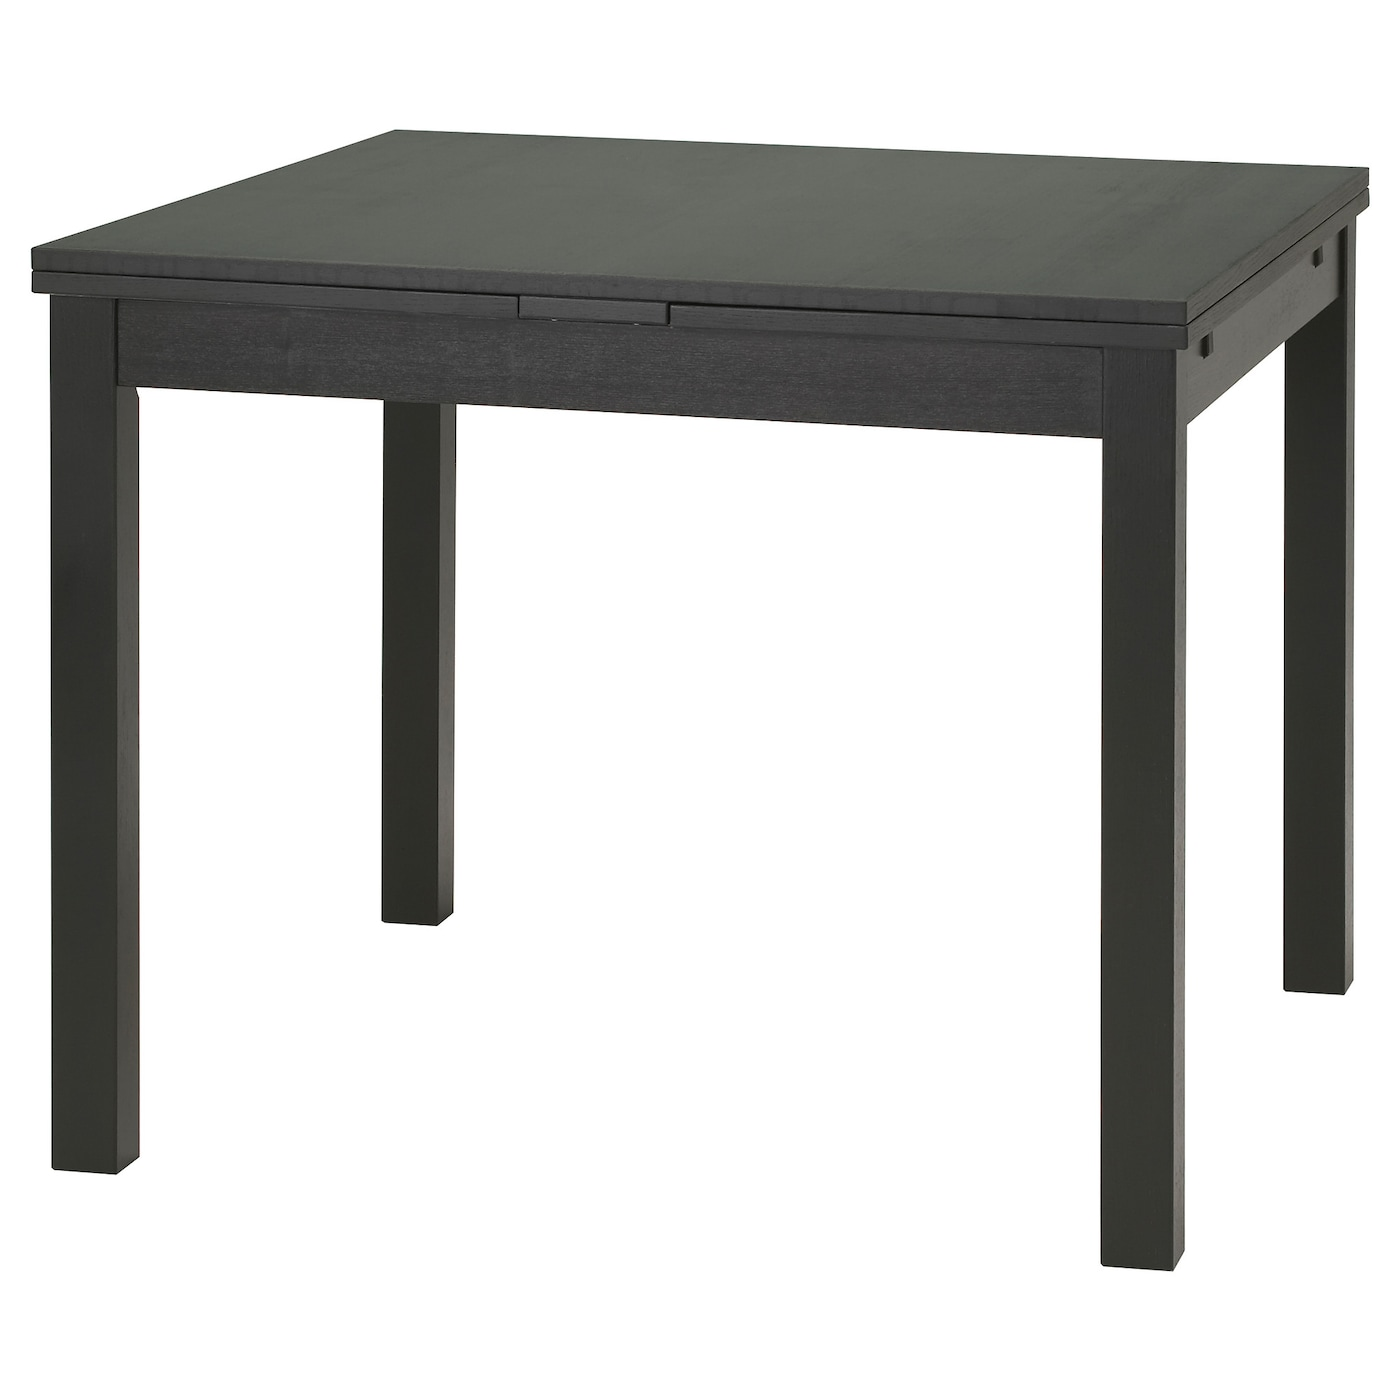 Bjursta extendable table brown black 90 129 168x90 cm ikea - Table salle a manger extensible ikea ...